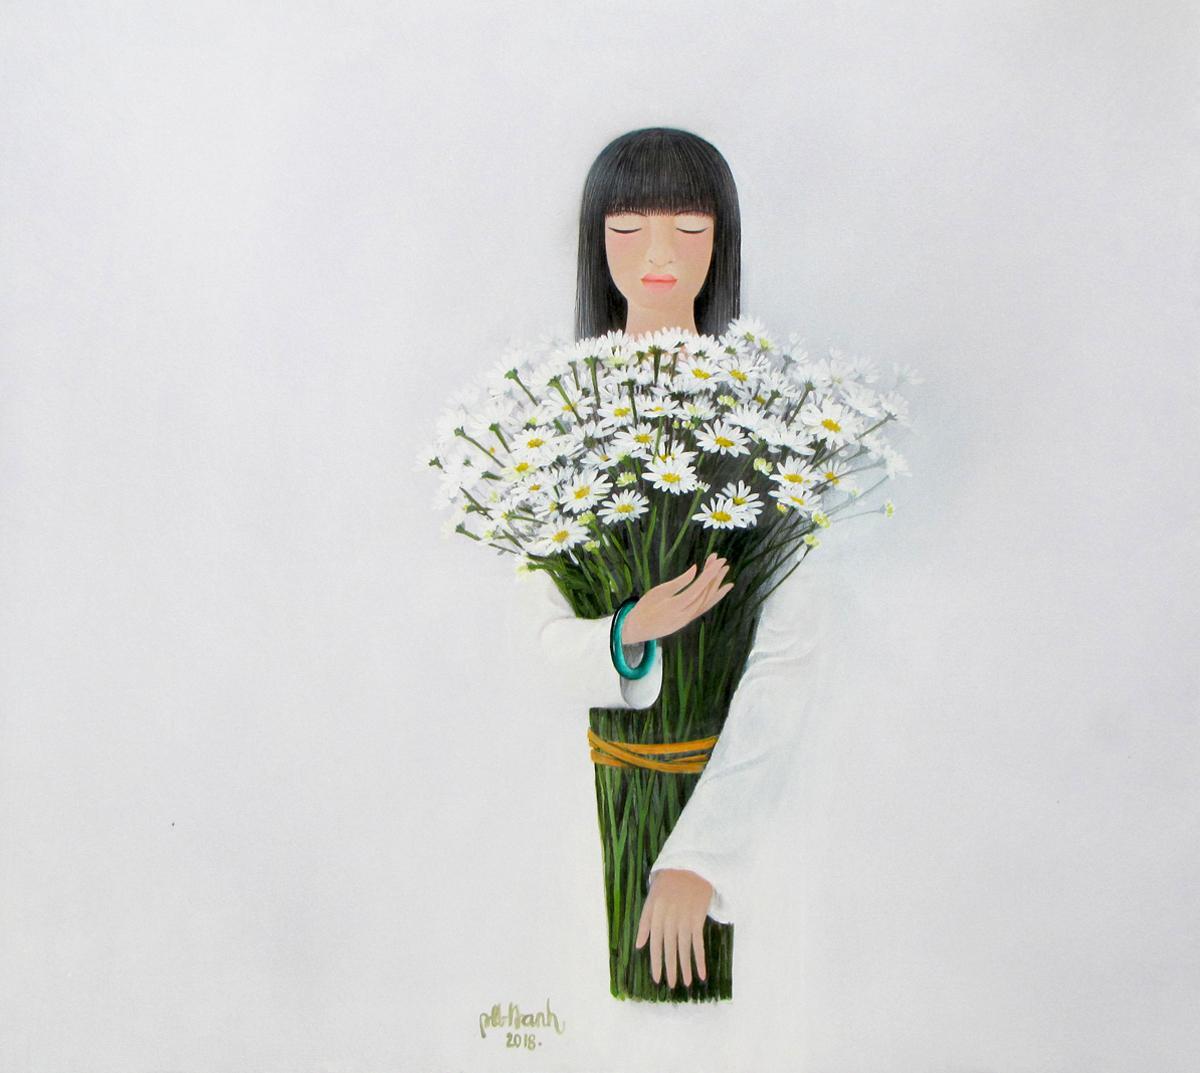 Lady with daisy flowers-80x90-BaoHanh